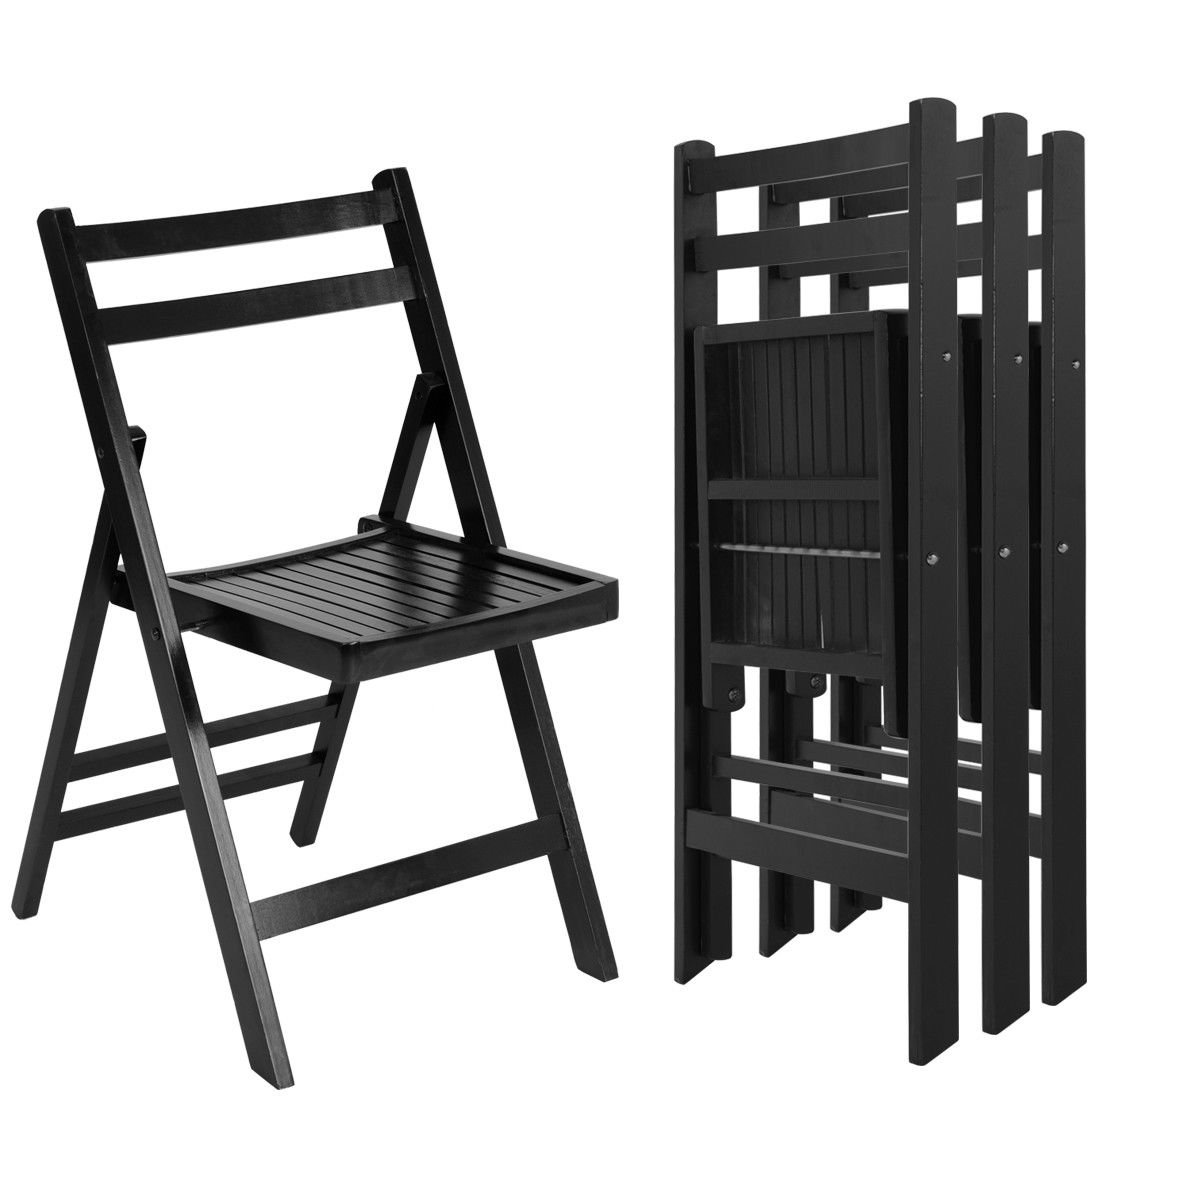 Giantex 4 Pcs Solid Wood Folding Chairs Ergonomic Slatted Seat Backrest Wedding Patio Garden Home Furniture (Black)